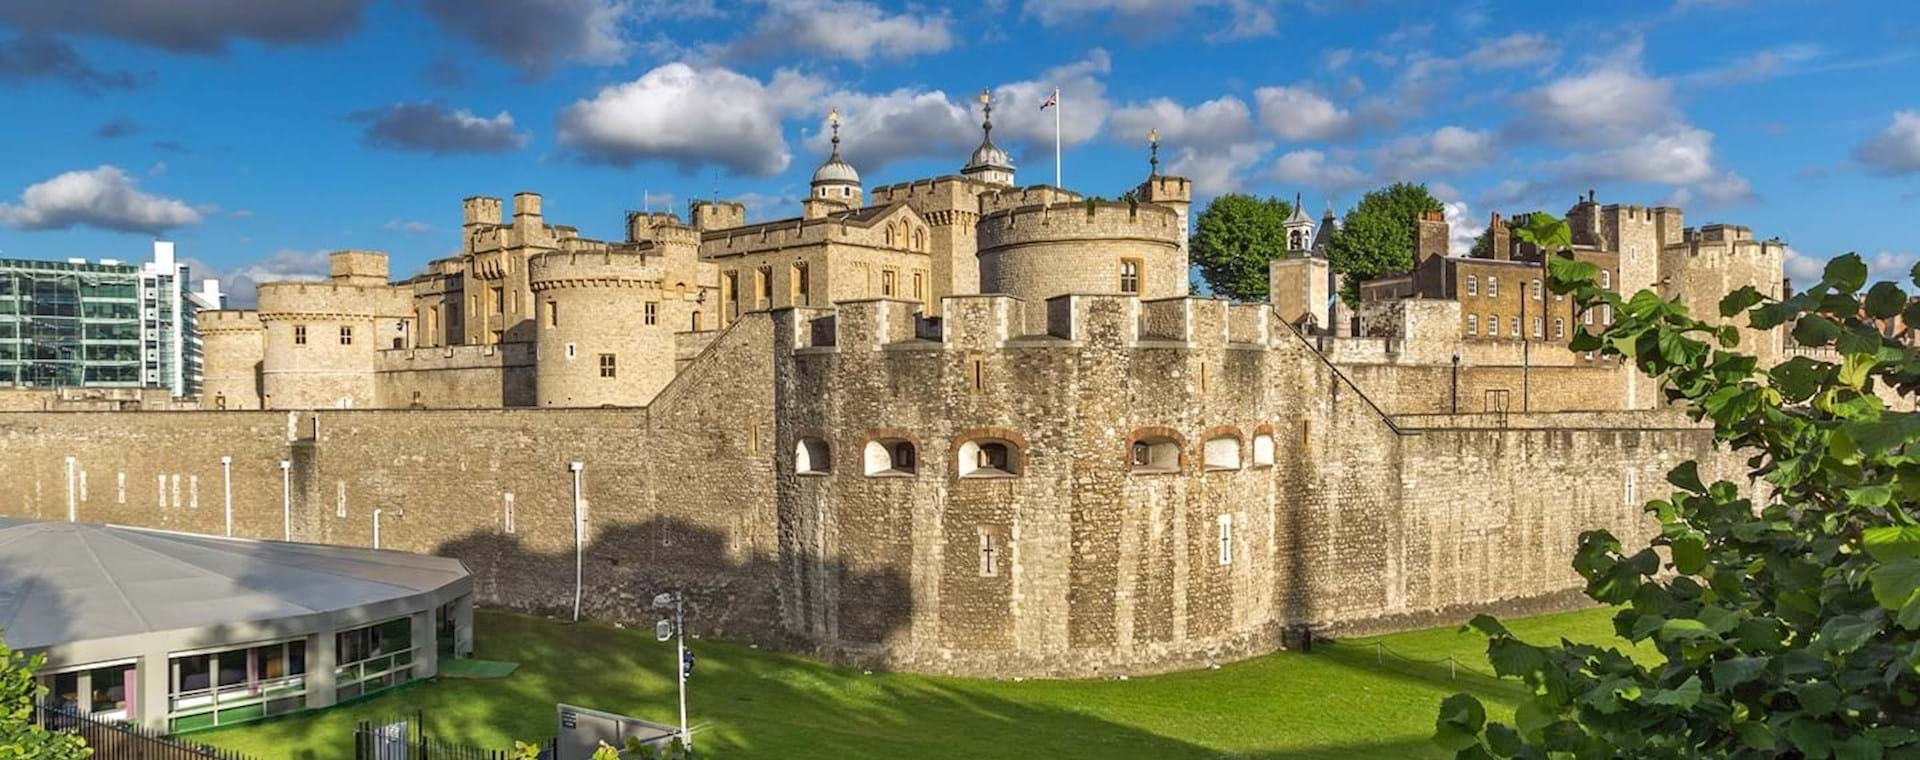 Full-Day Combo: Best of Royal London with Tower of London Early Access & Changing of the Guard